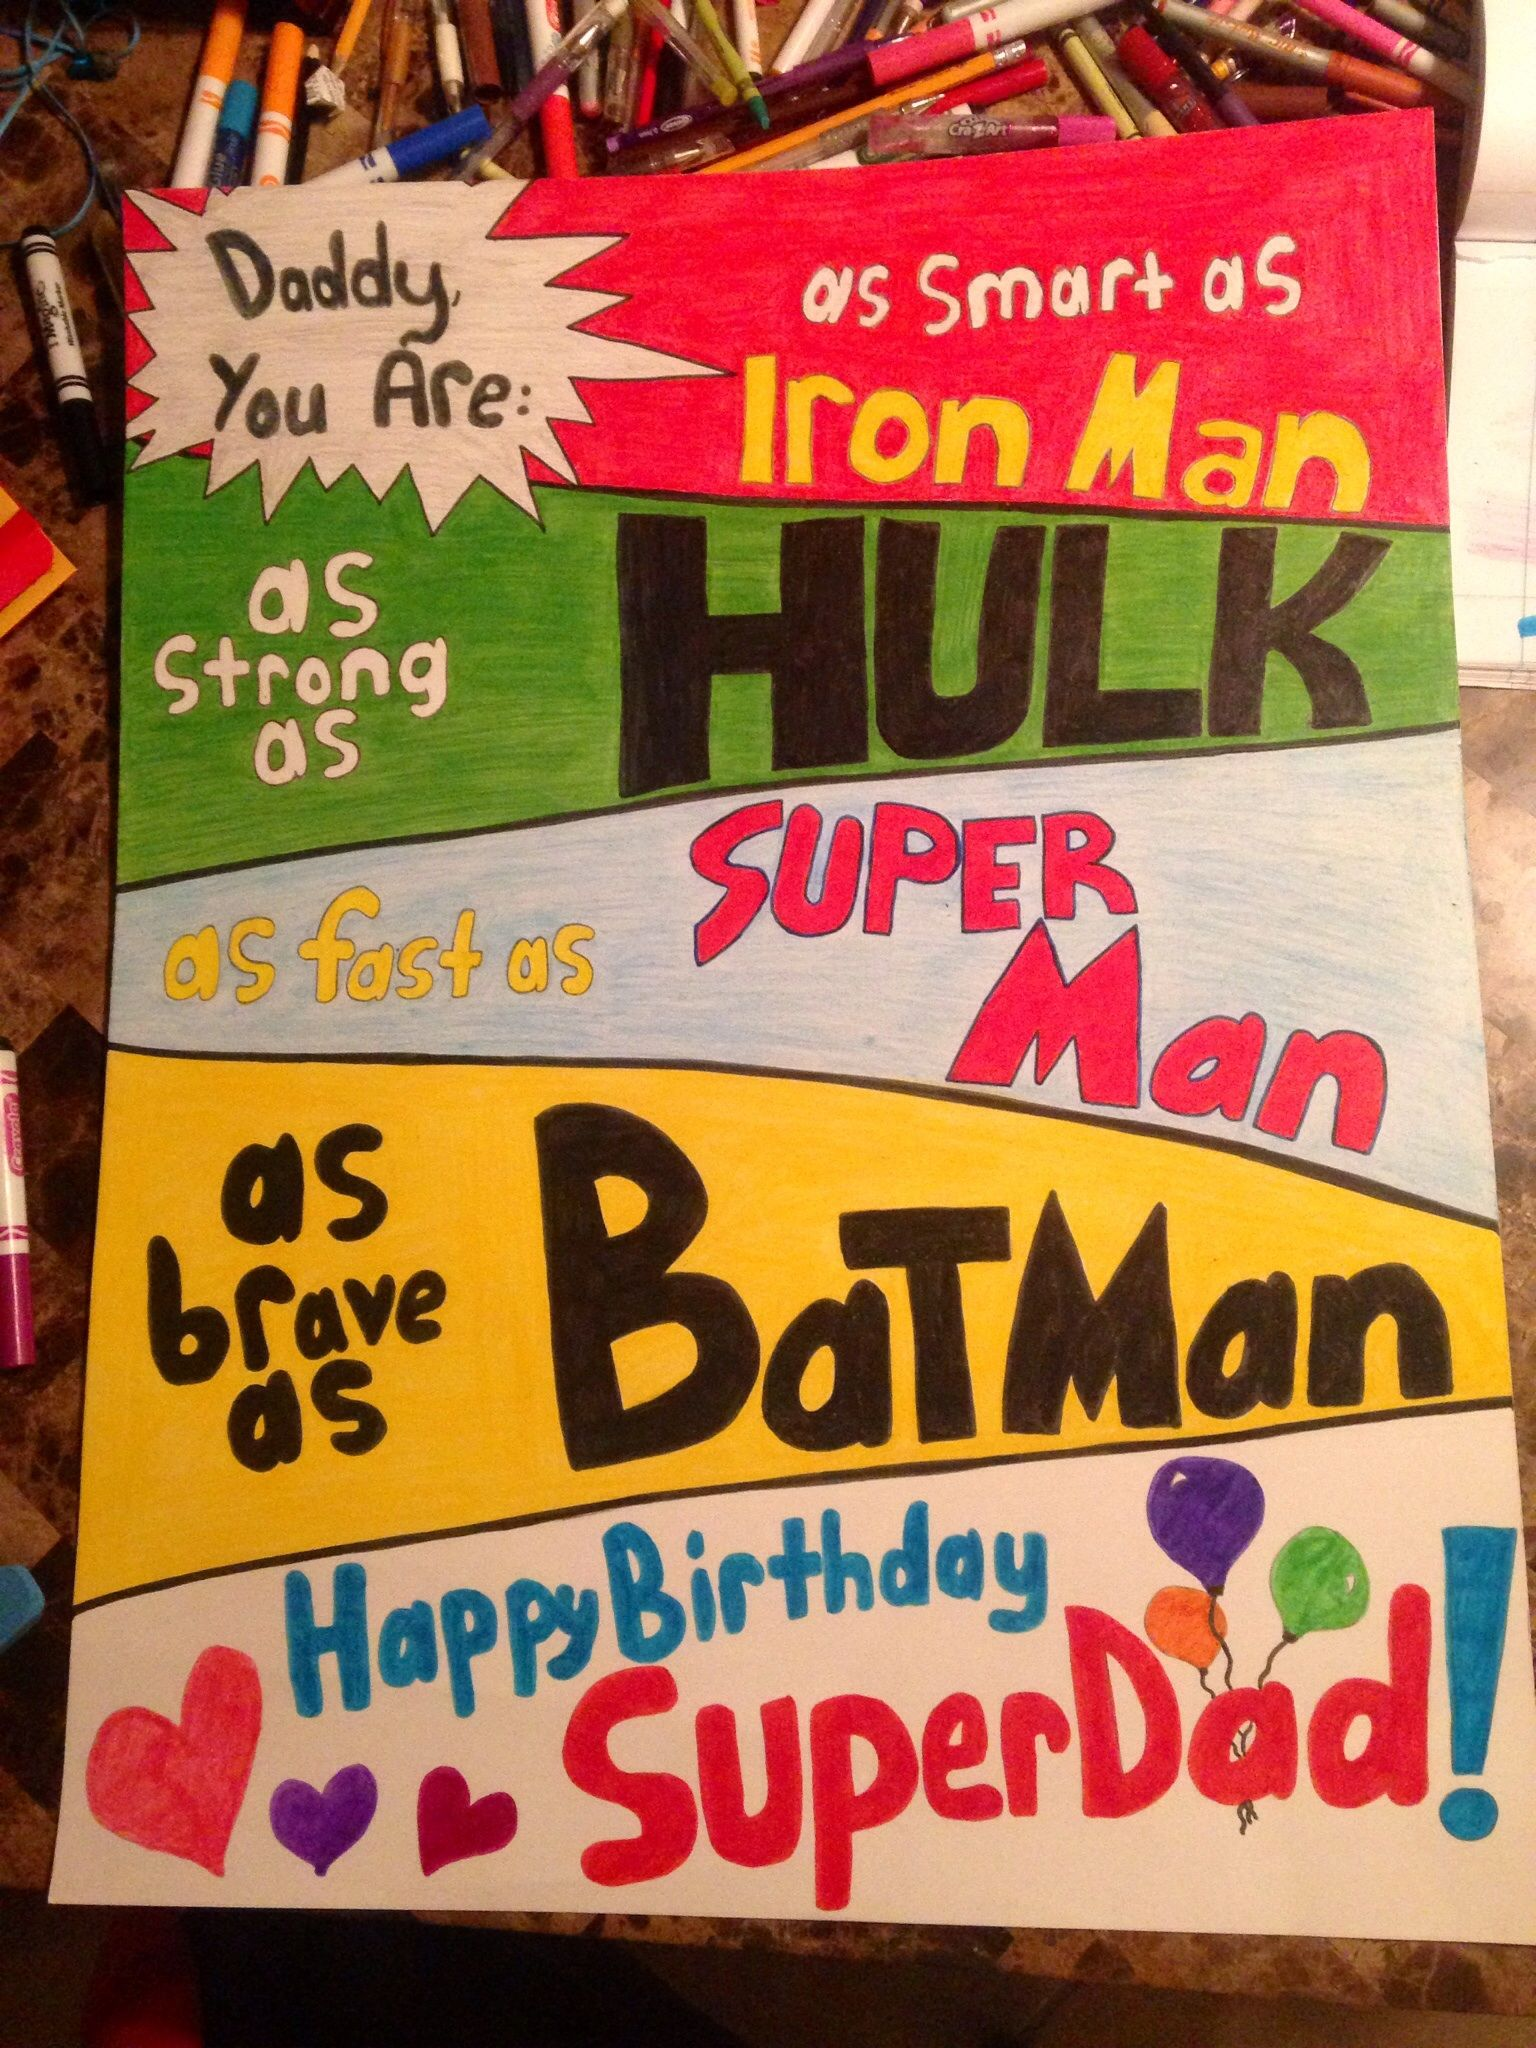 A creative poster for Father's Day or dad's birthday